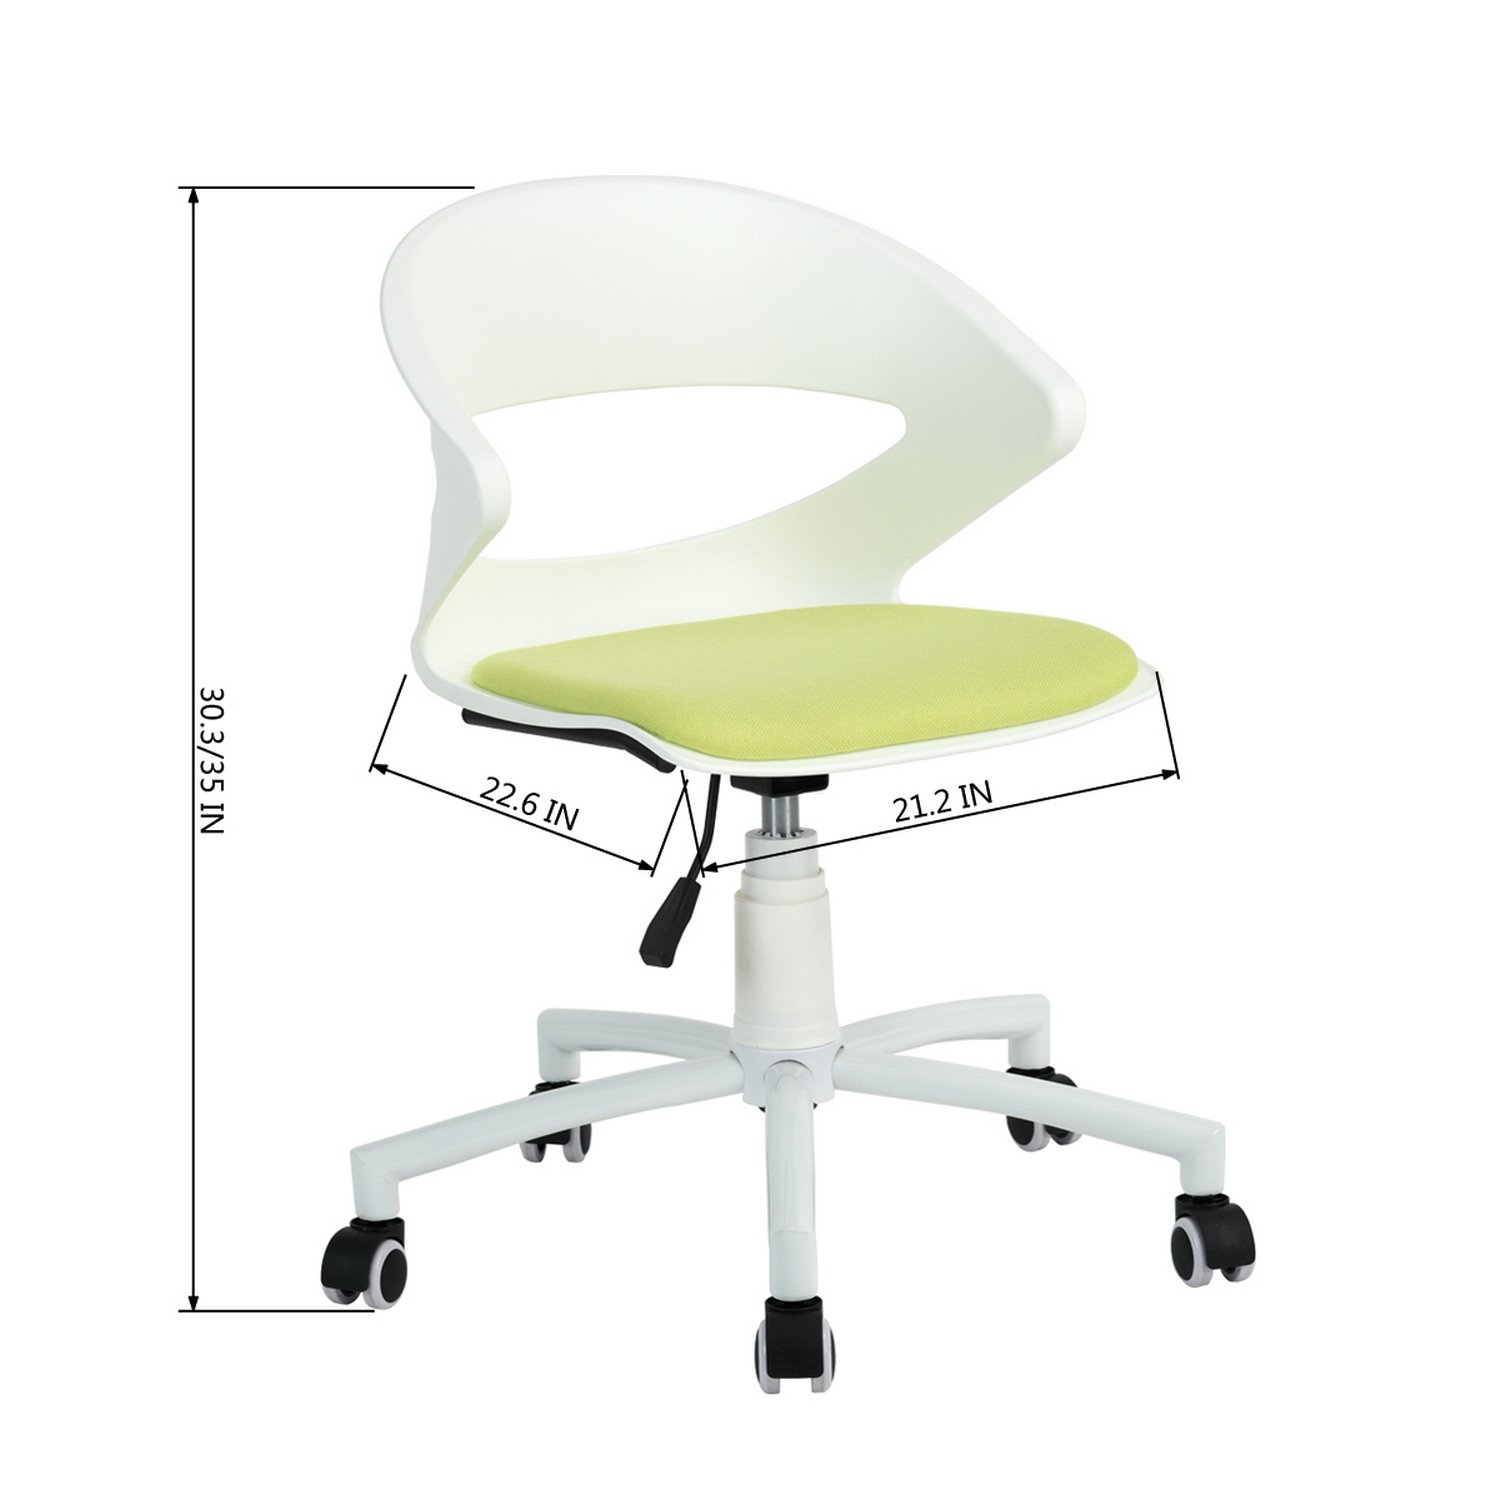 Amazon com homy casa home office chair ergonomic white desk chair pp mid back support with green fabric upholstery seat modern office chair kitchen